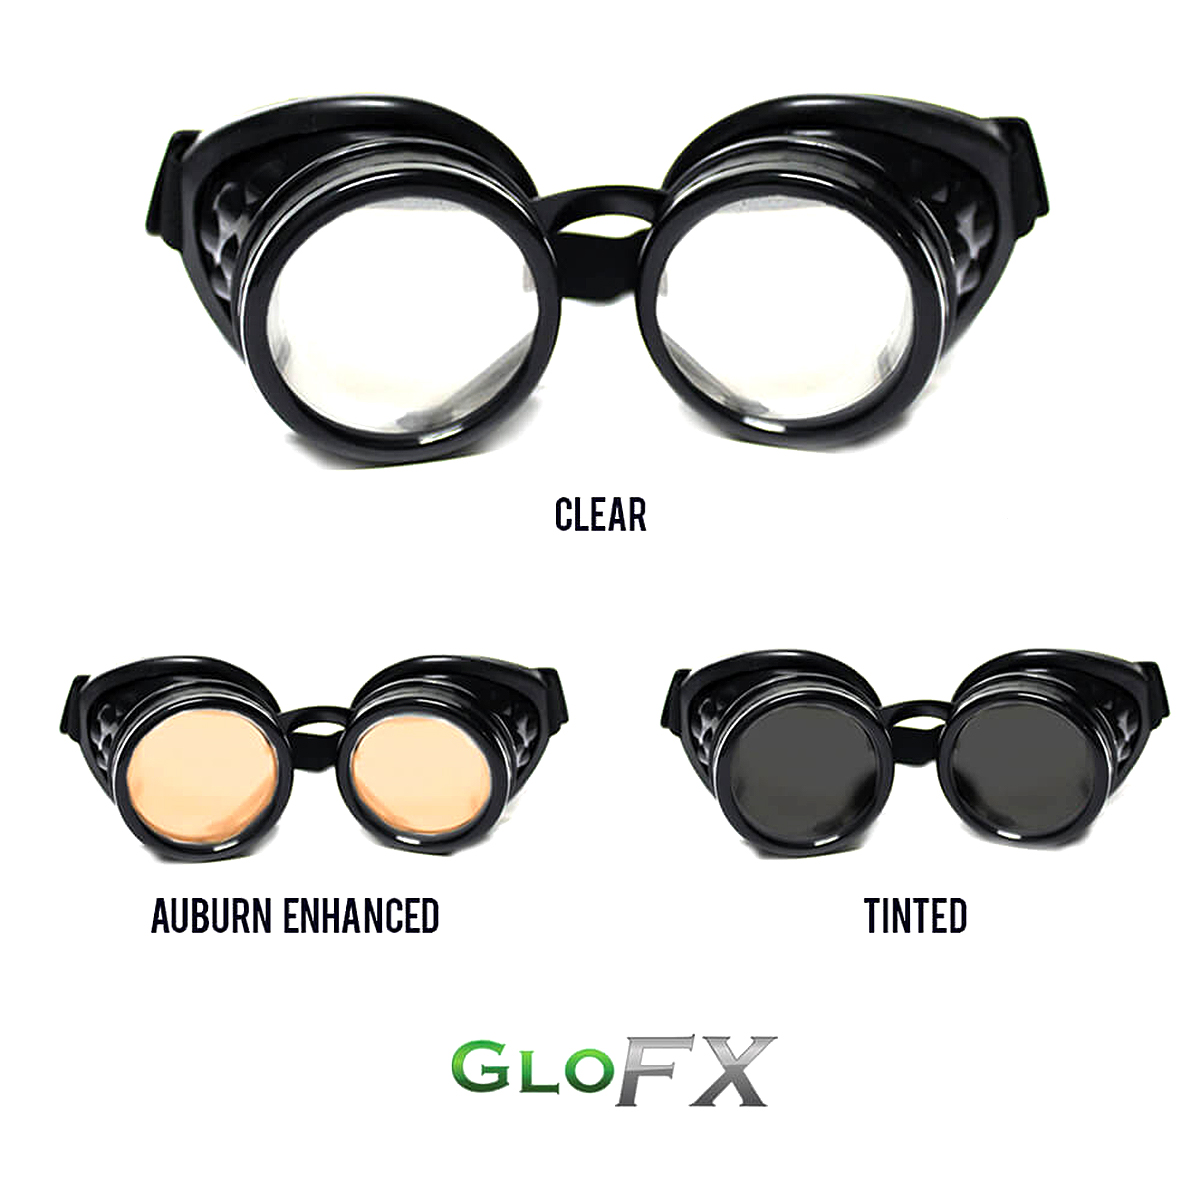 Black_Diffraction_Goggles_Feature